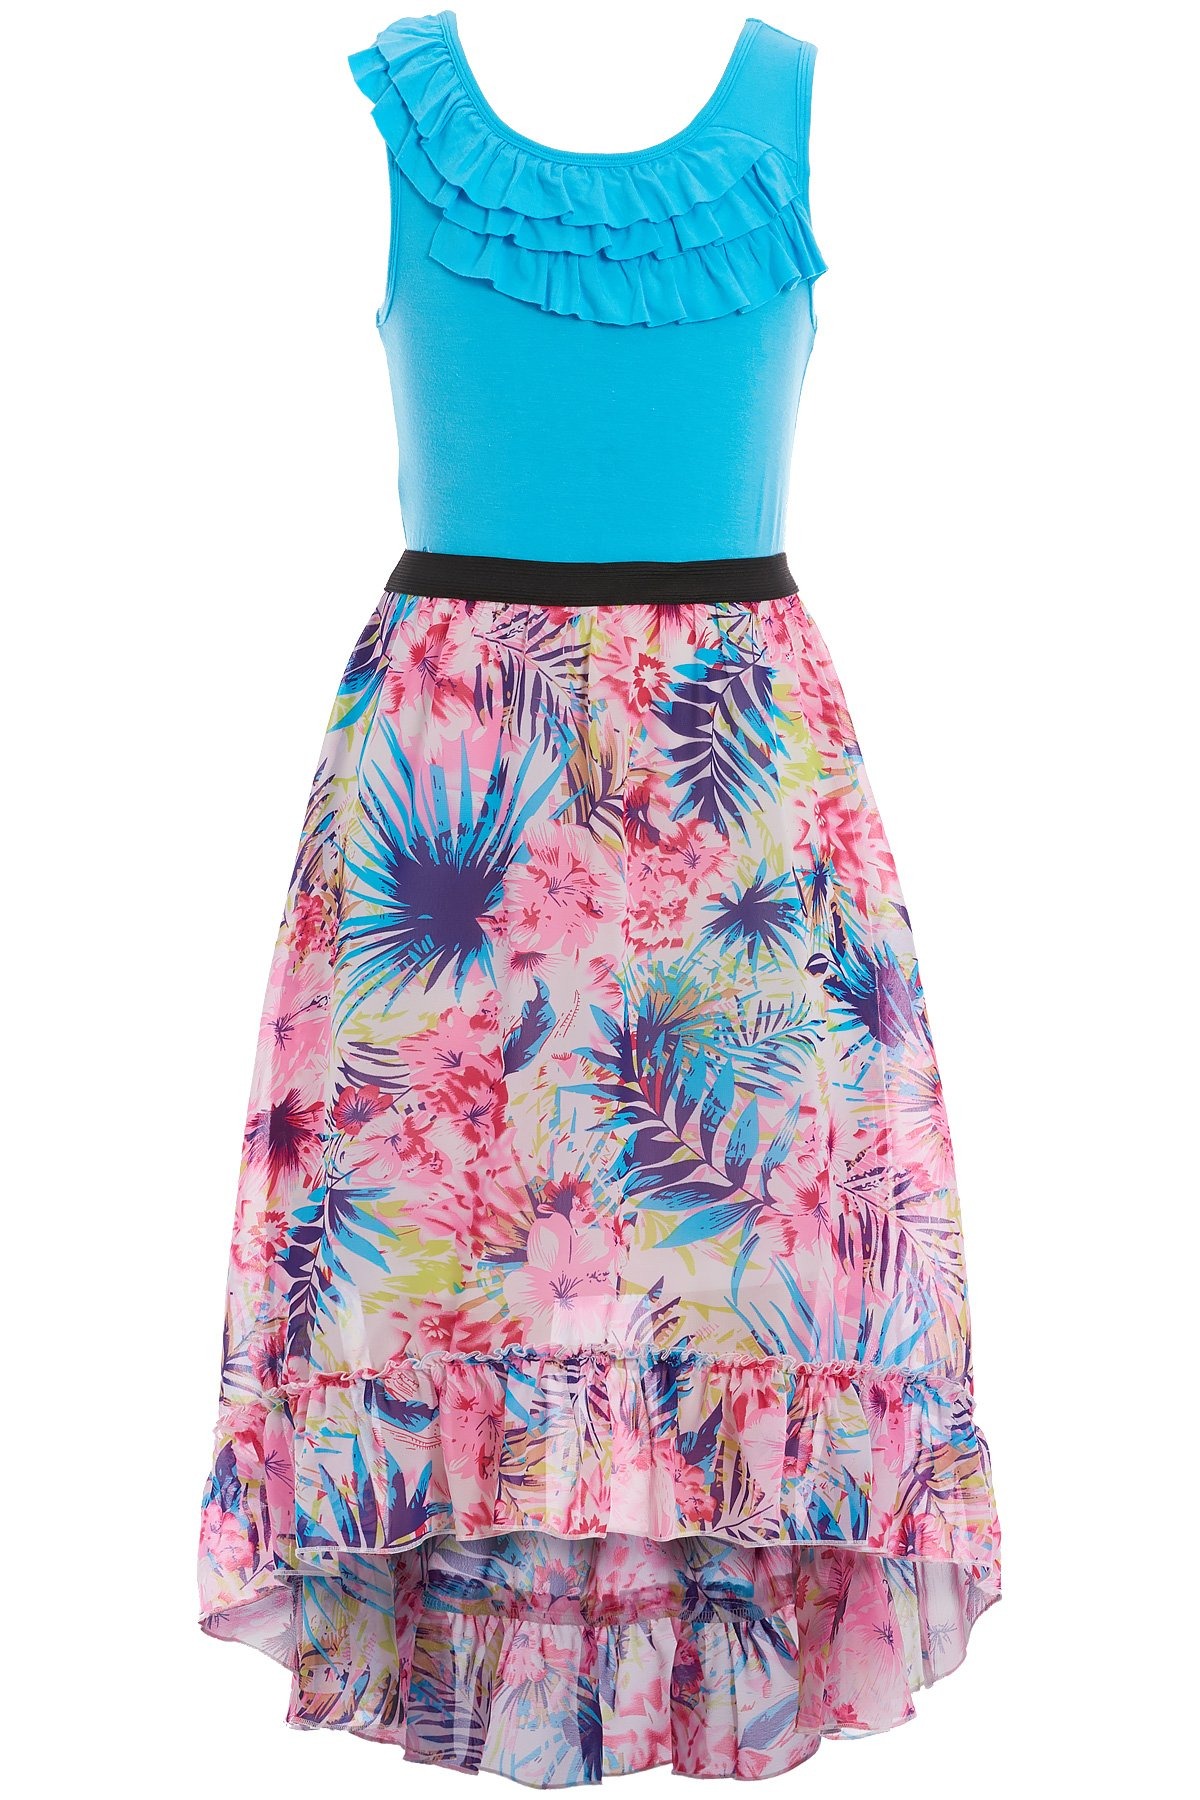 Truly Me, Soft Knit Top & Beautiful Floral Chiffon Bottom Dress (Many Options), 7-16 (16, Turquoise Multi)